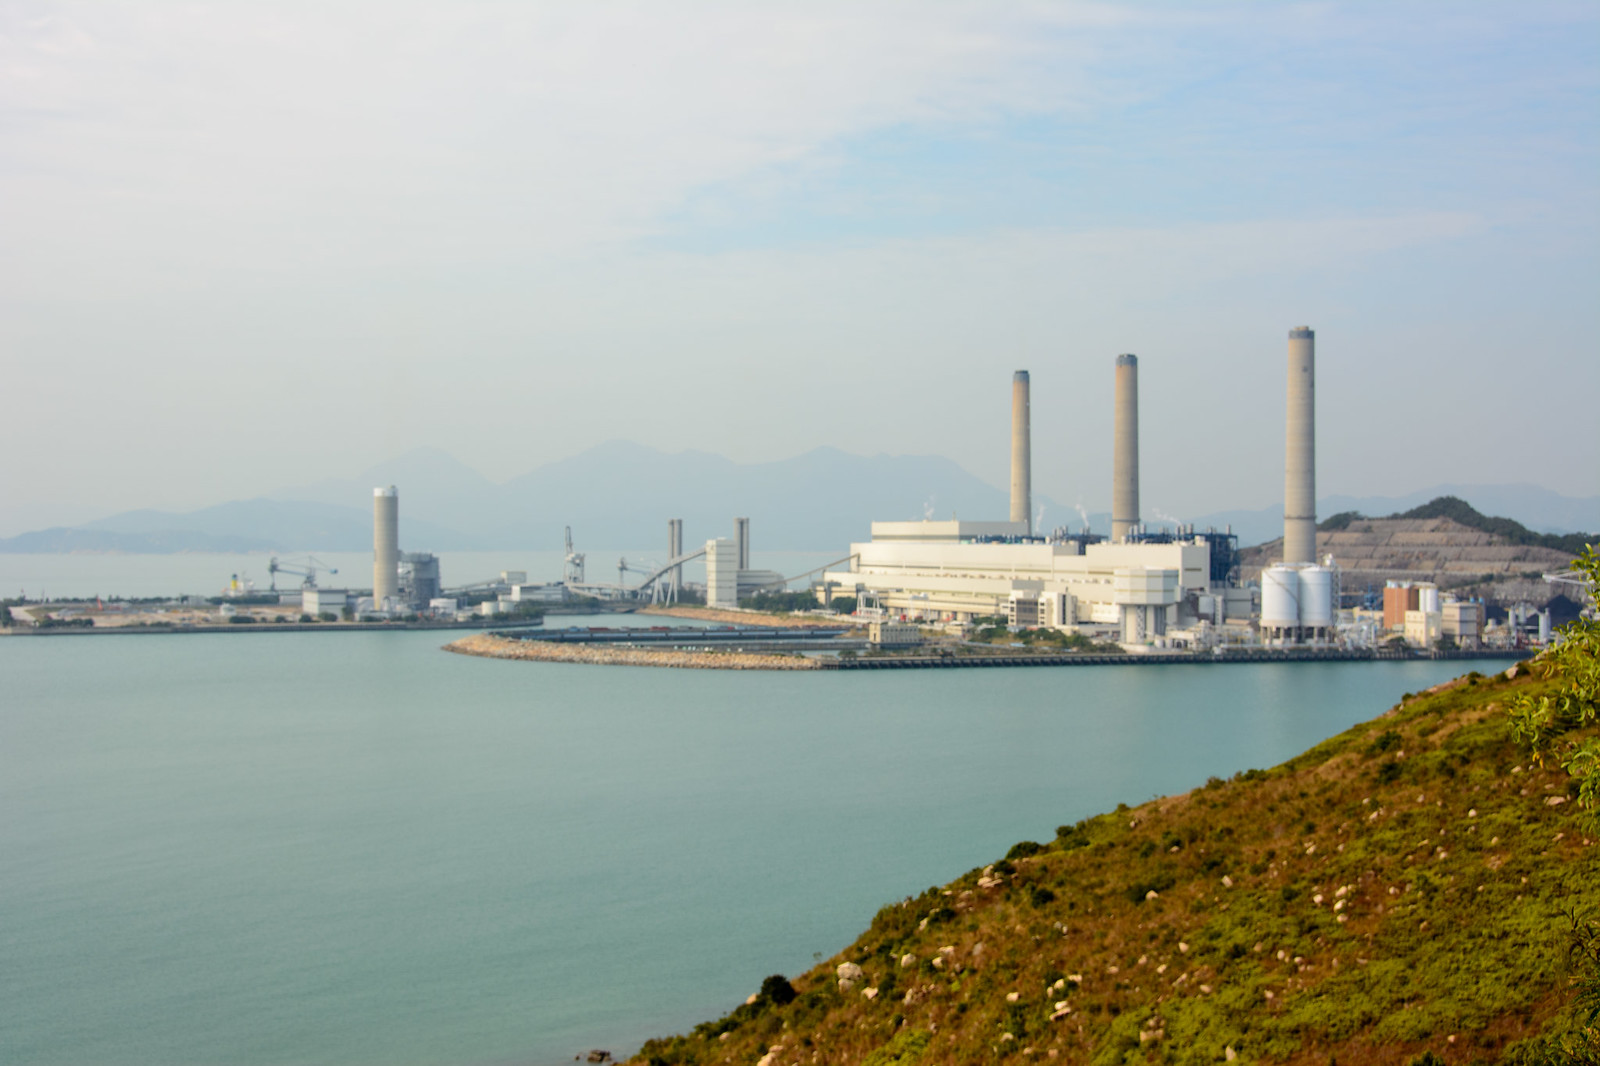 Lamma Island Power Plant 南丫島發電廠